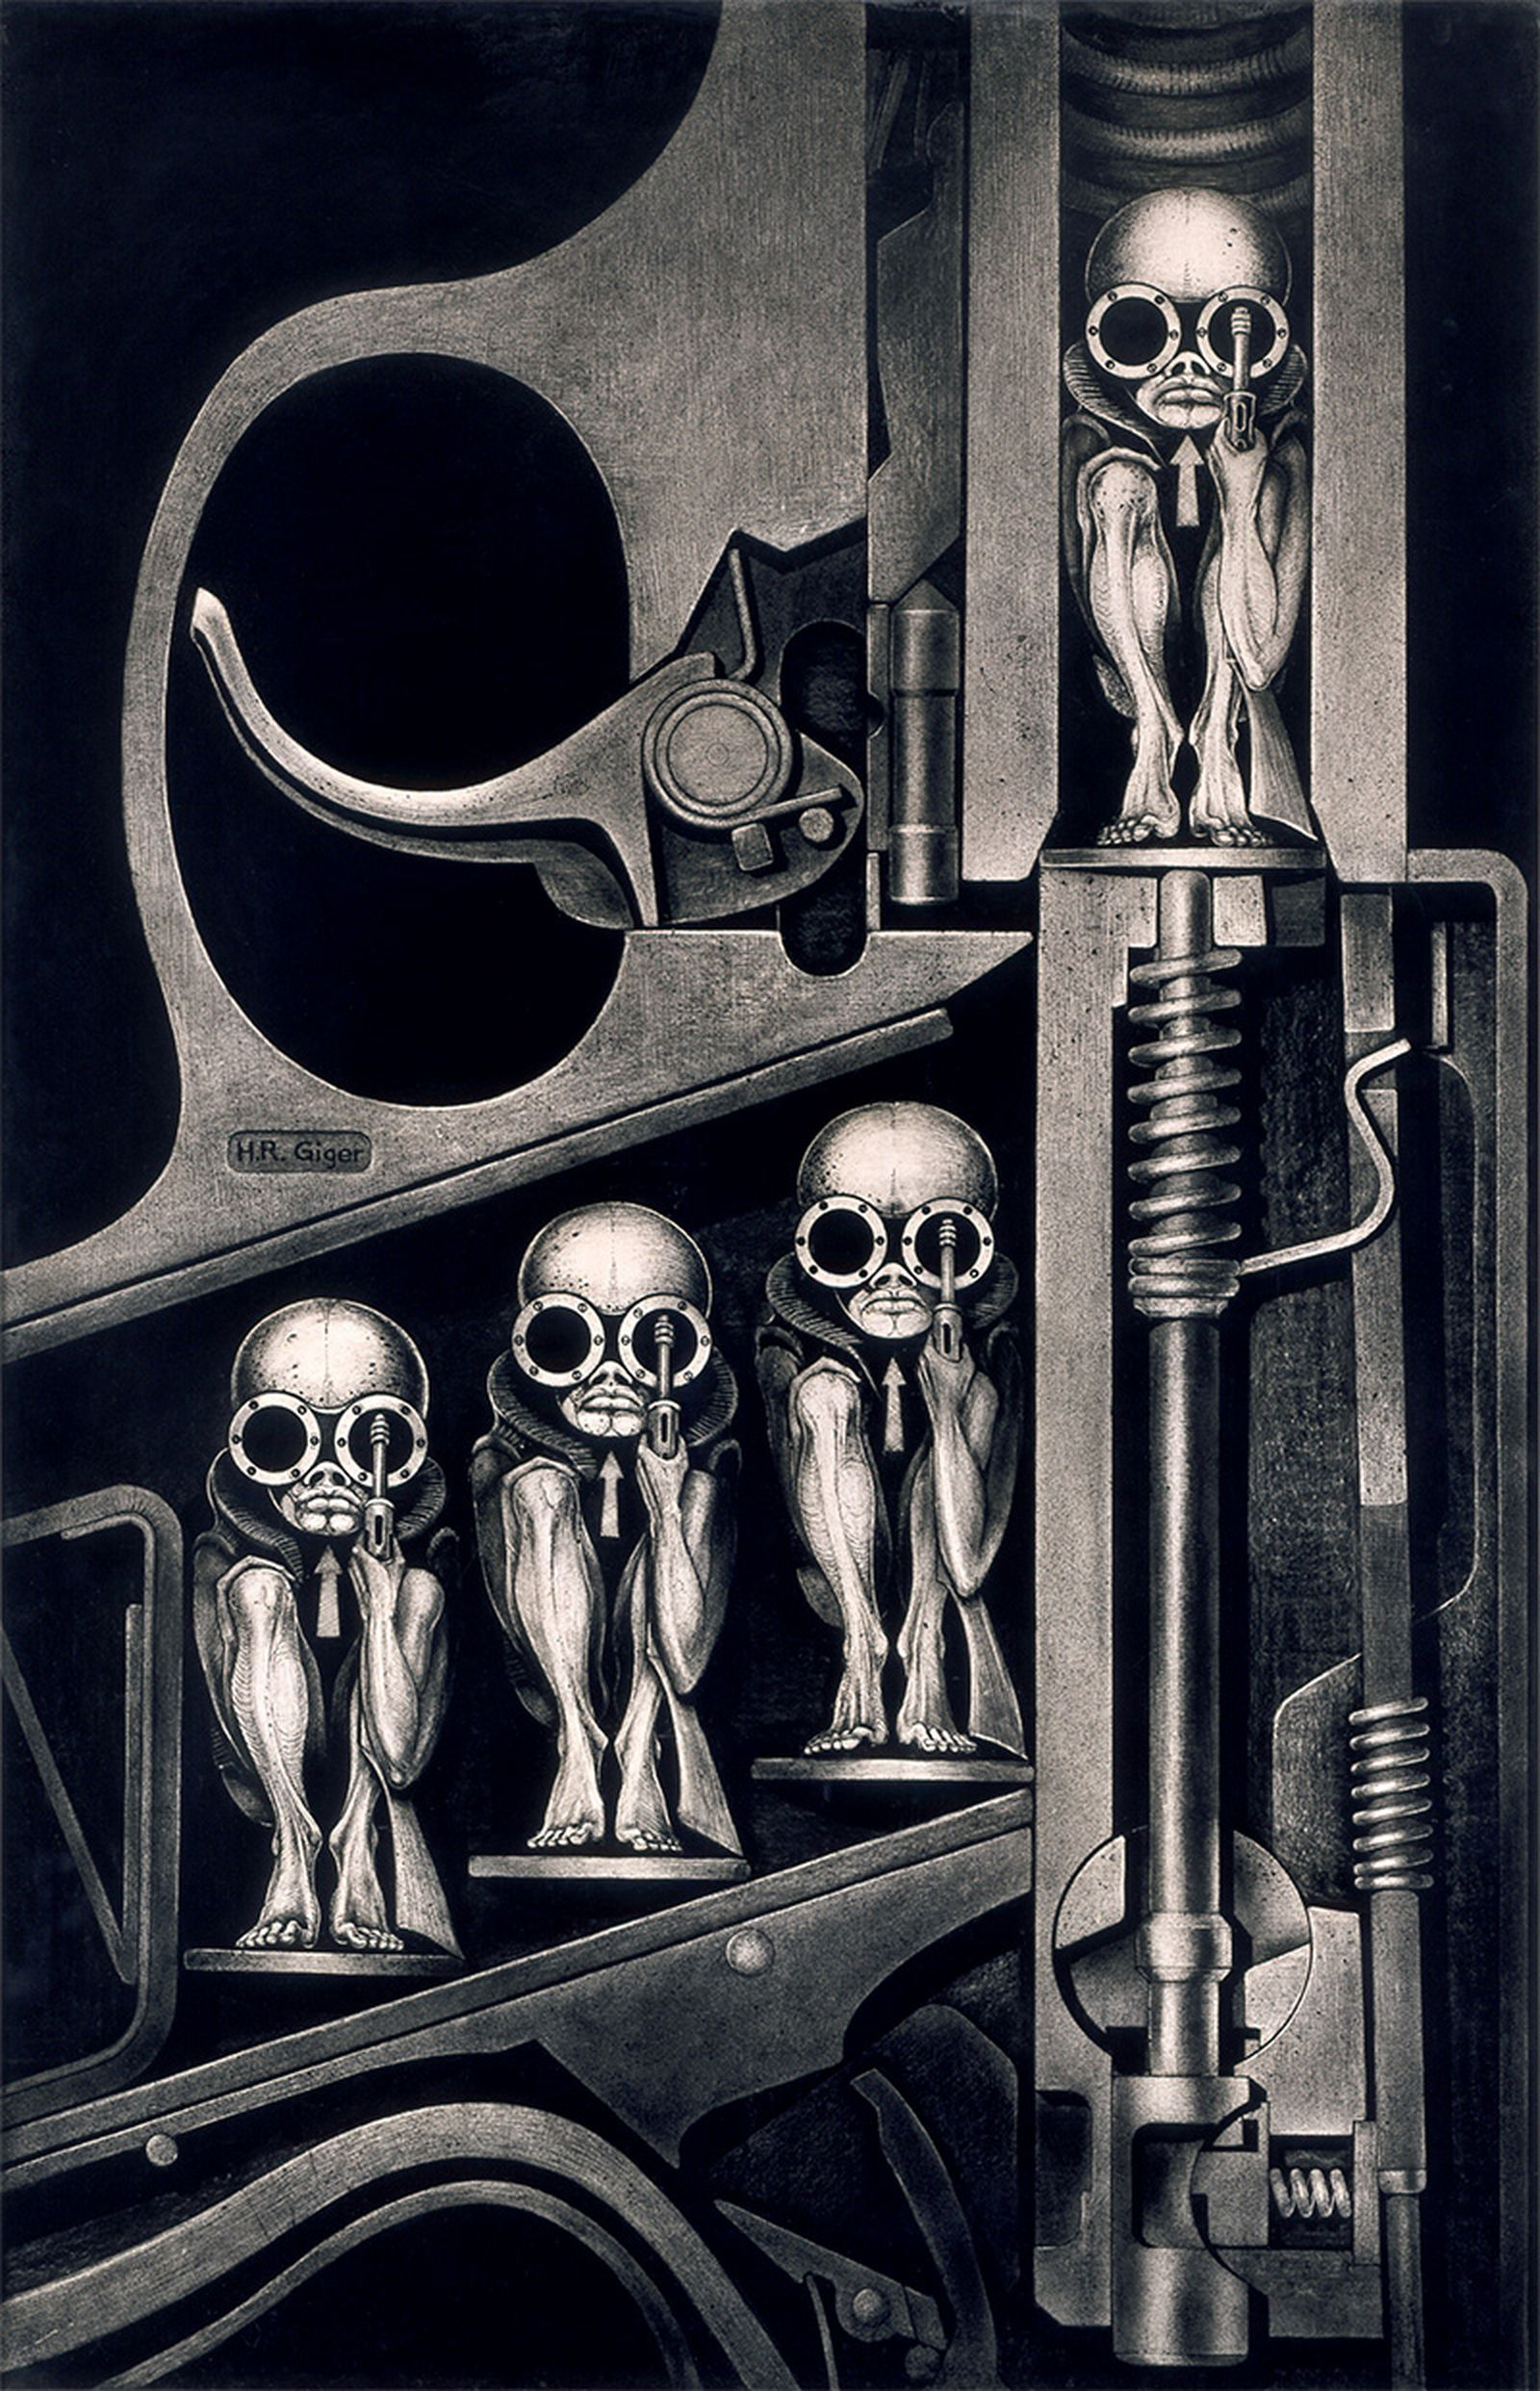 HR Giger, Stillbirthmachine, 1967